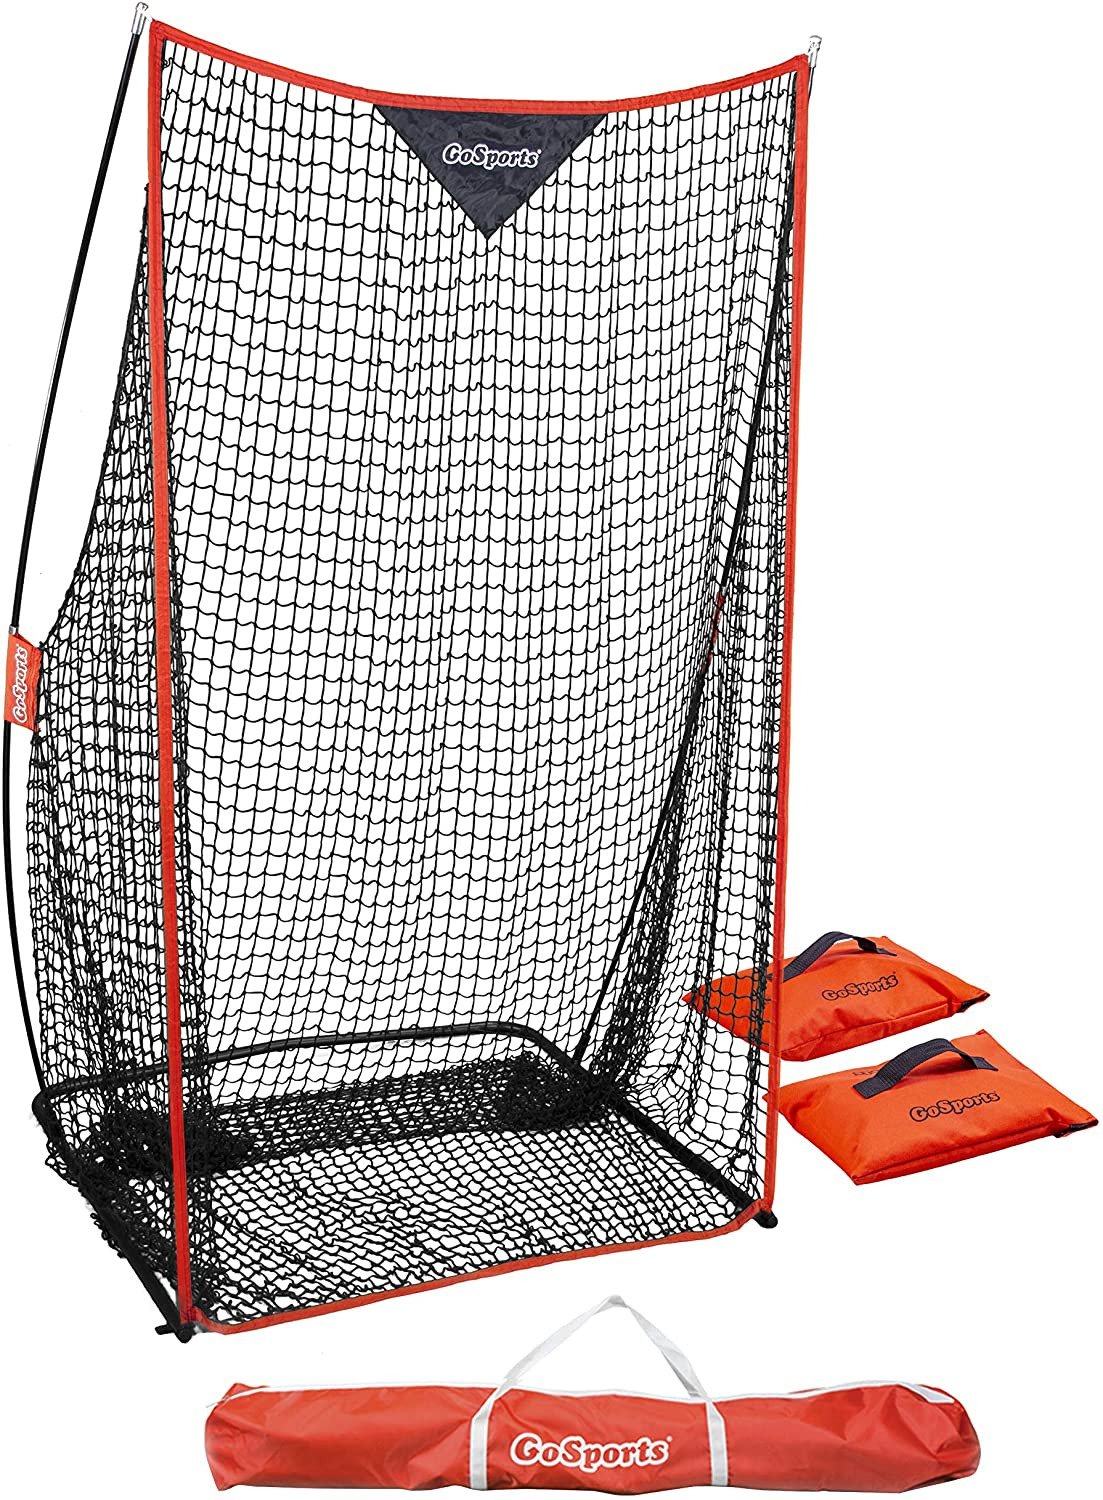 GoSports Football 7' x 4' Kicking - Max 89% OFF Manufacturer OFFicial shop Sideline Pu Net Practice for